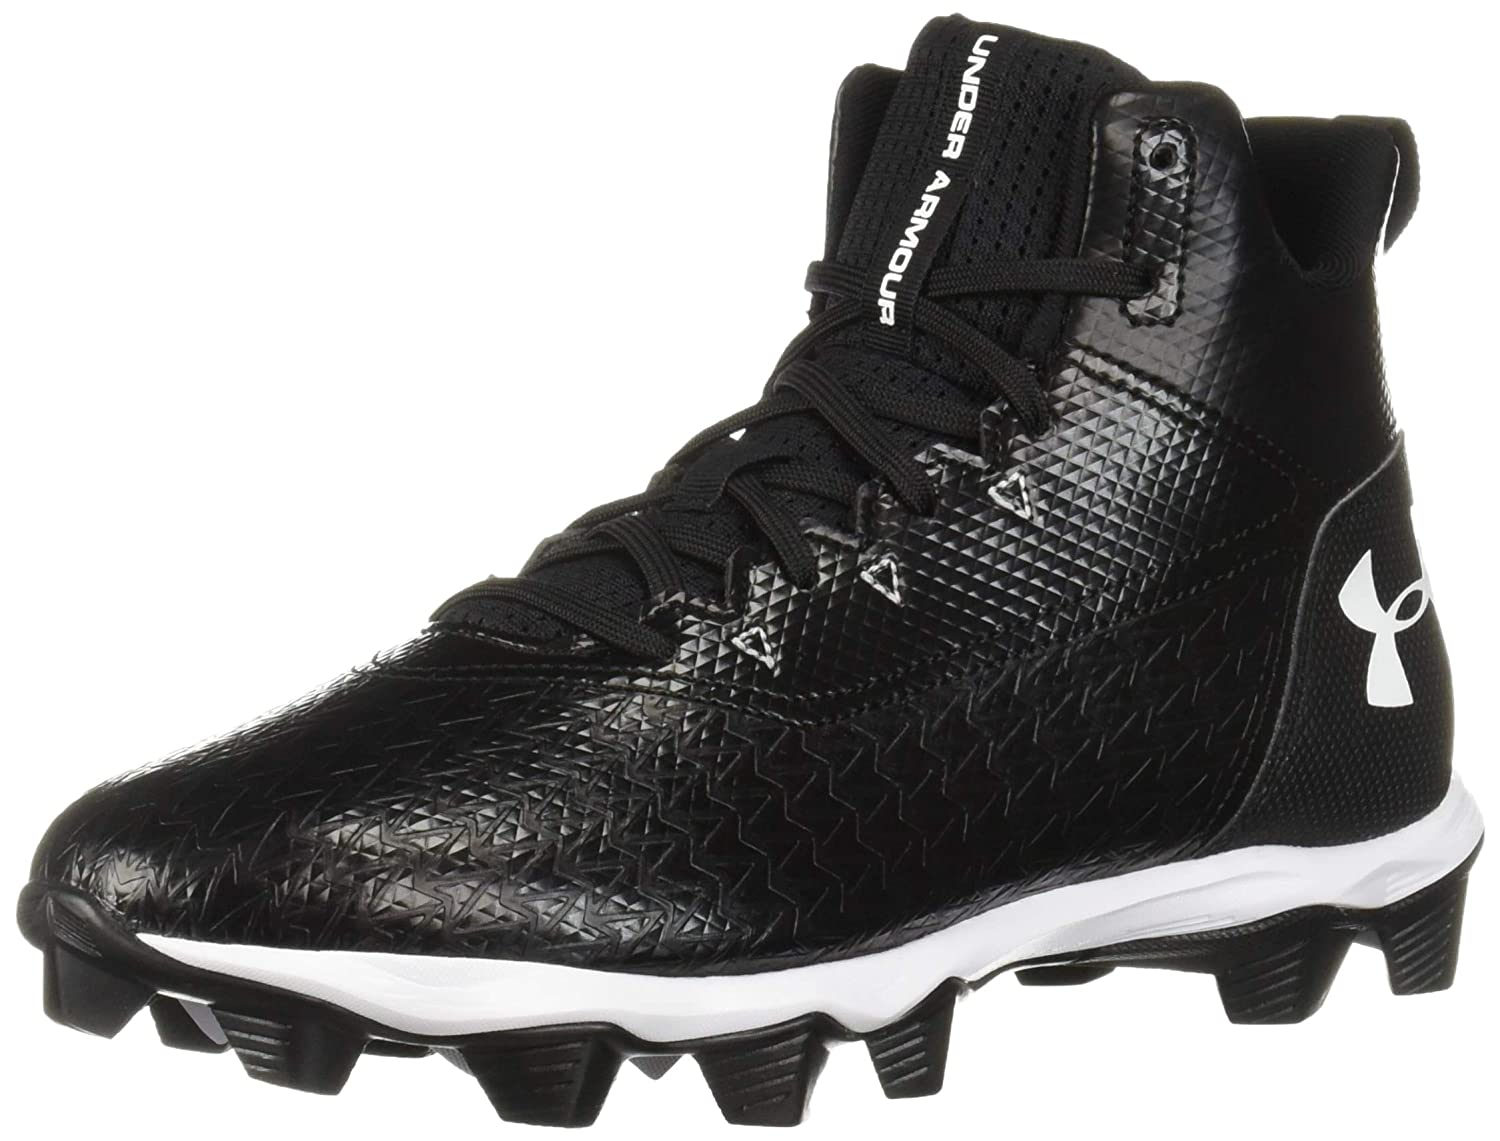 Under Armour Men's Hammer Mid RM Football Shoe, 黒 (002)/白い, 8.5 M US